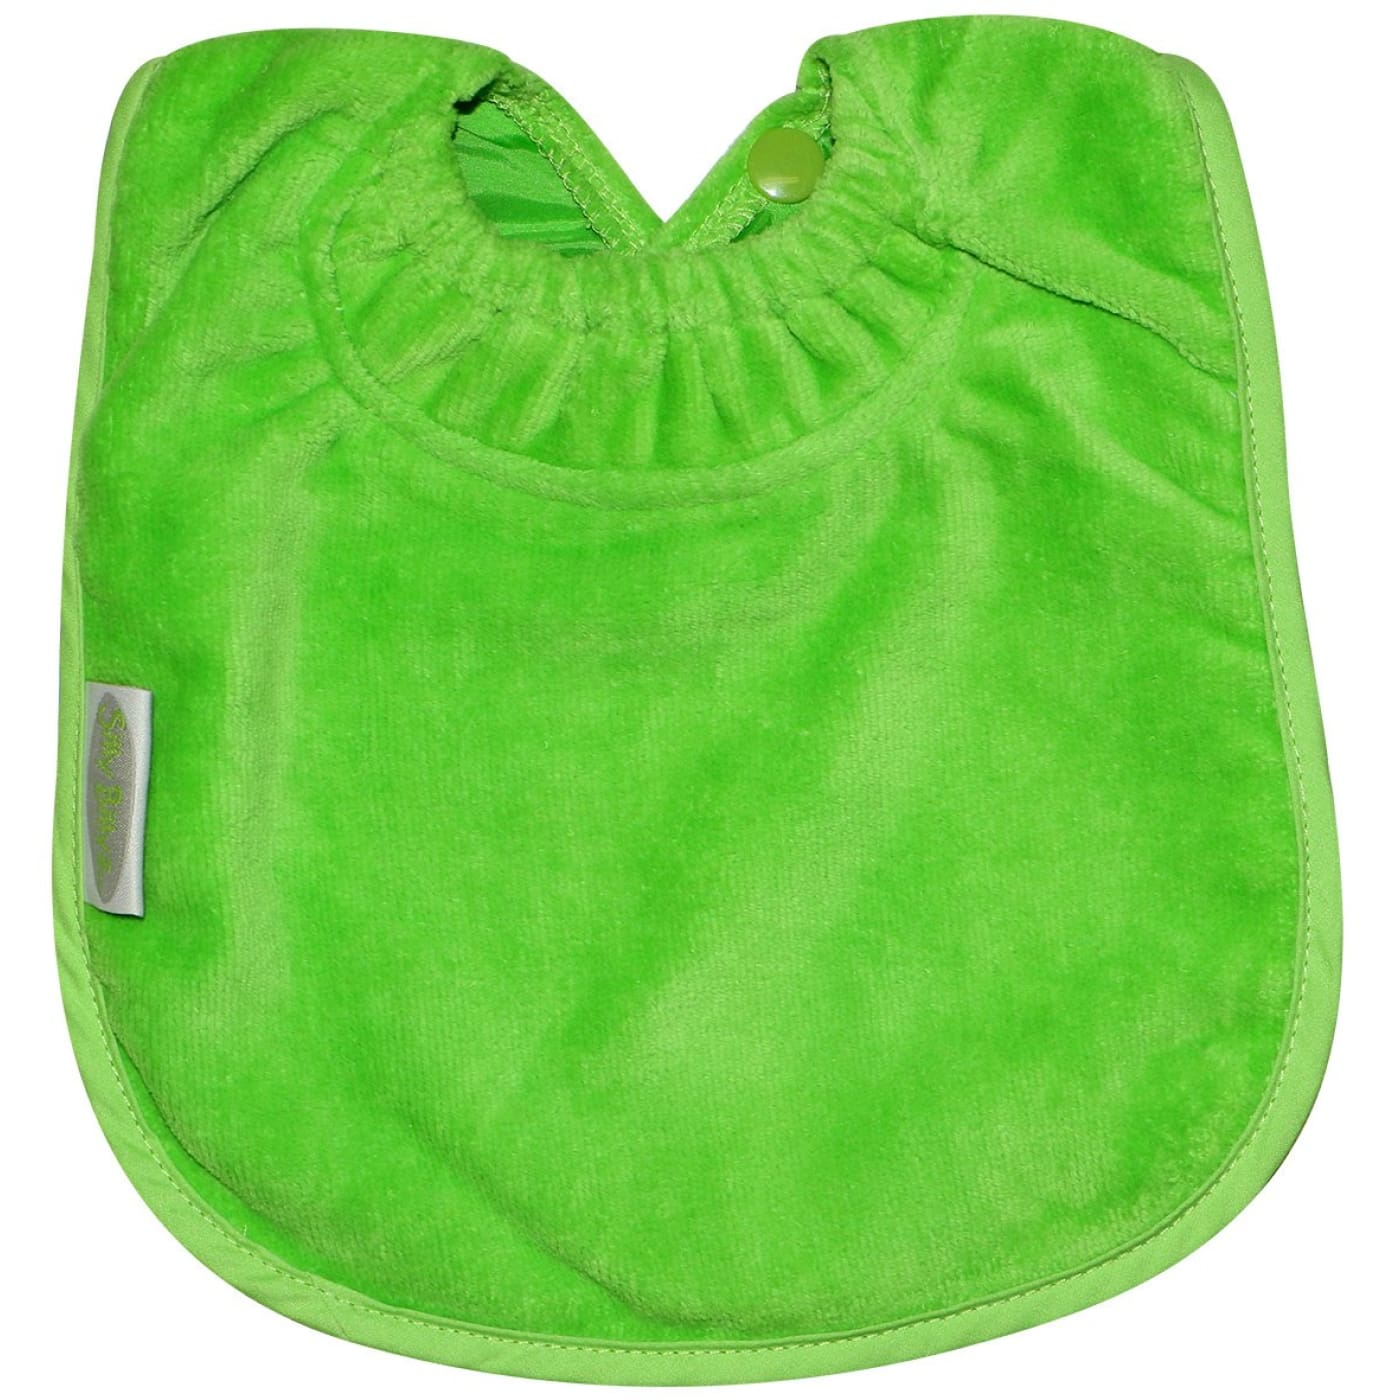 Silly Billyz Towel Plain Large Bib - Lime - NURSING & FEEDING - BIBS/BURP CLOTHS